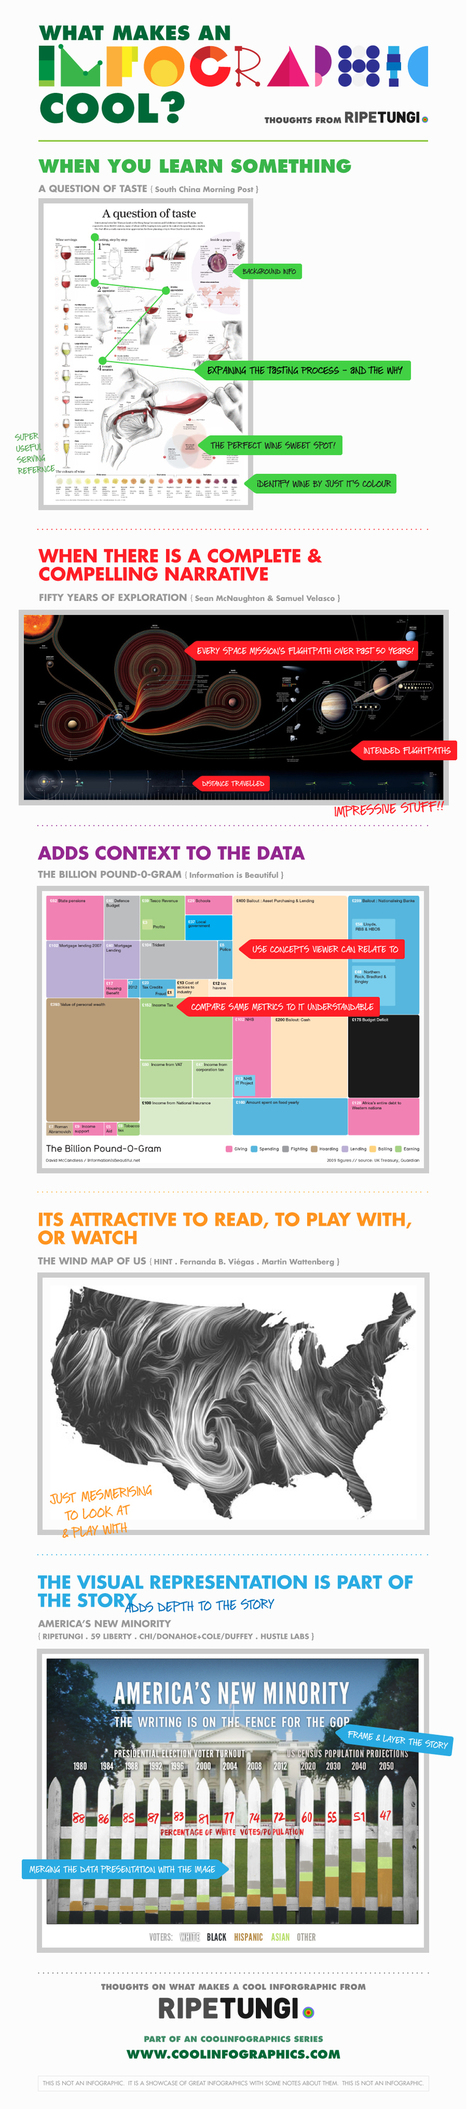 Robin Richards - What Makes an InfographicCool? - Blog About Infographics and Data Visualization - Cool Infographics | Infographics worth keeping | Scoop.it